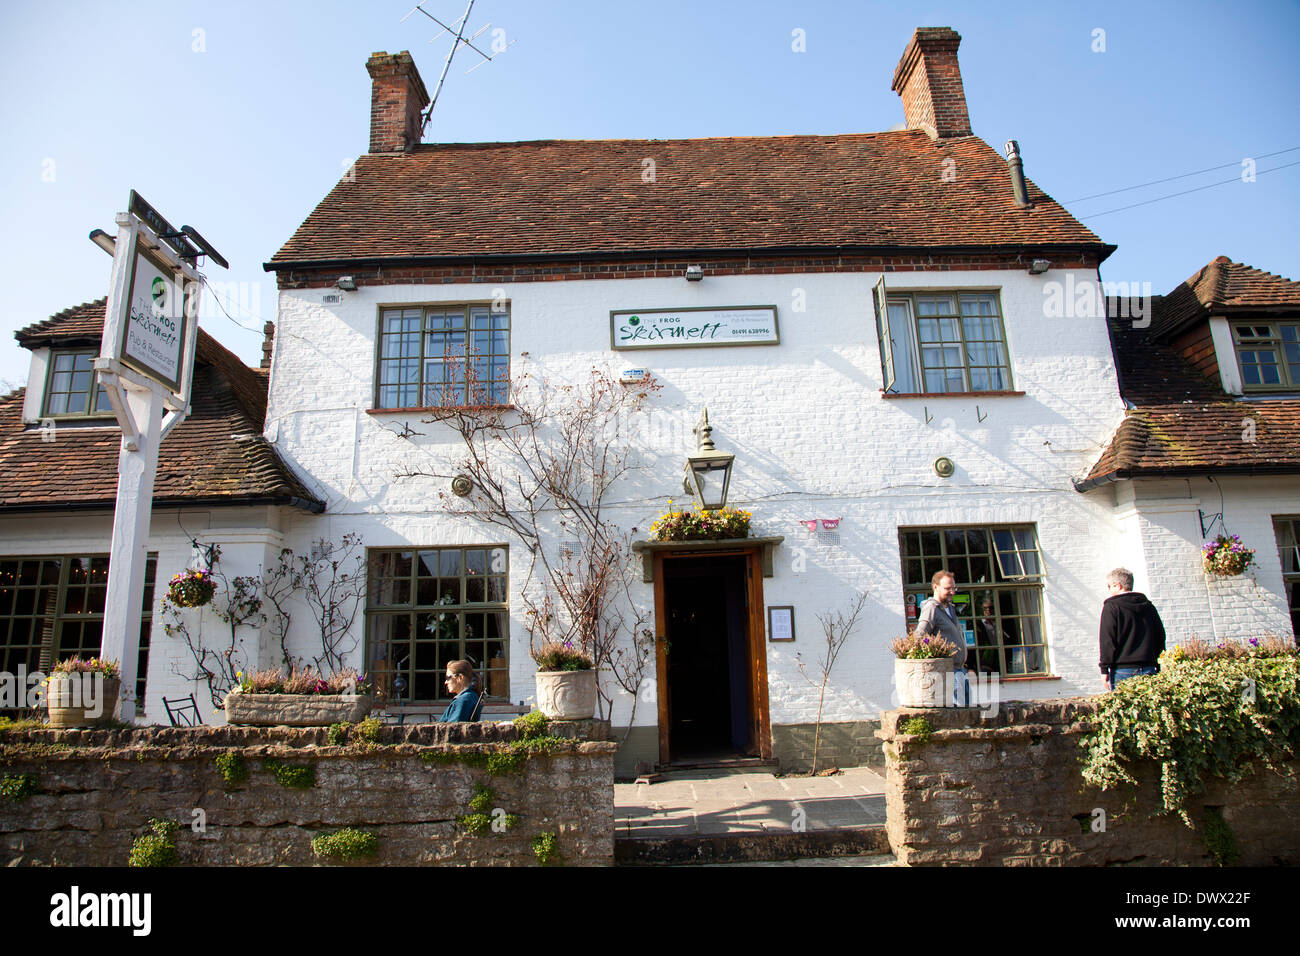 The Frog Pub and Restaurant in Skirmett in Buckinghamshire - UK - Stock Image